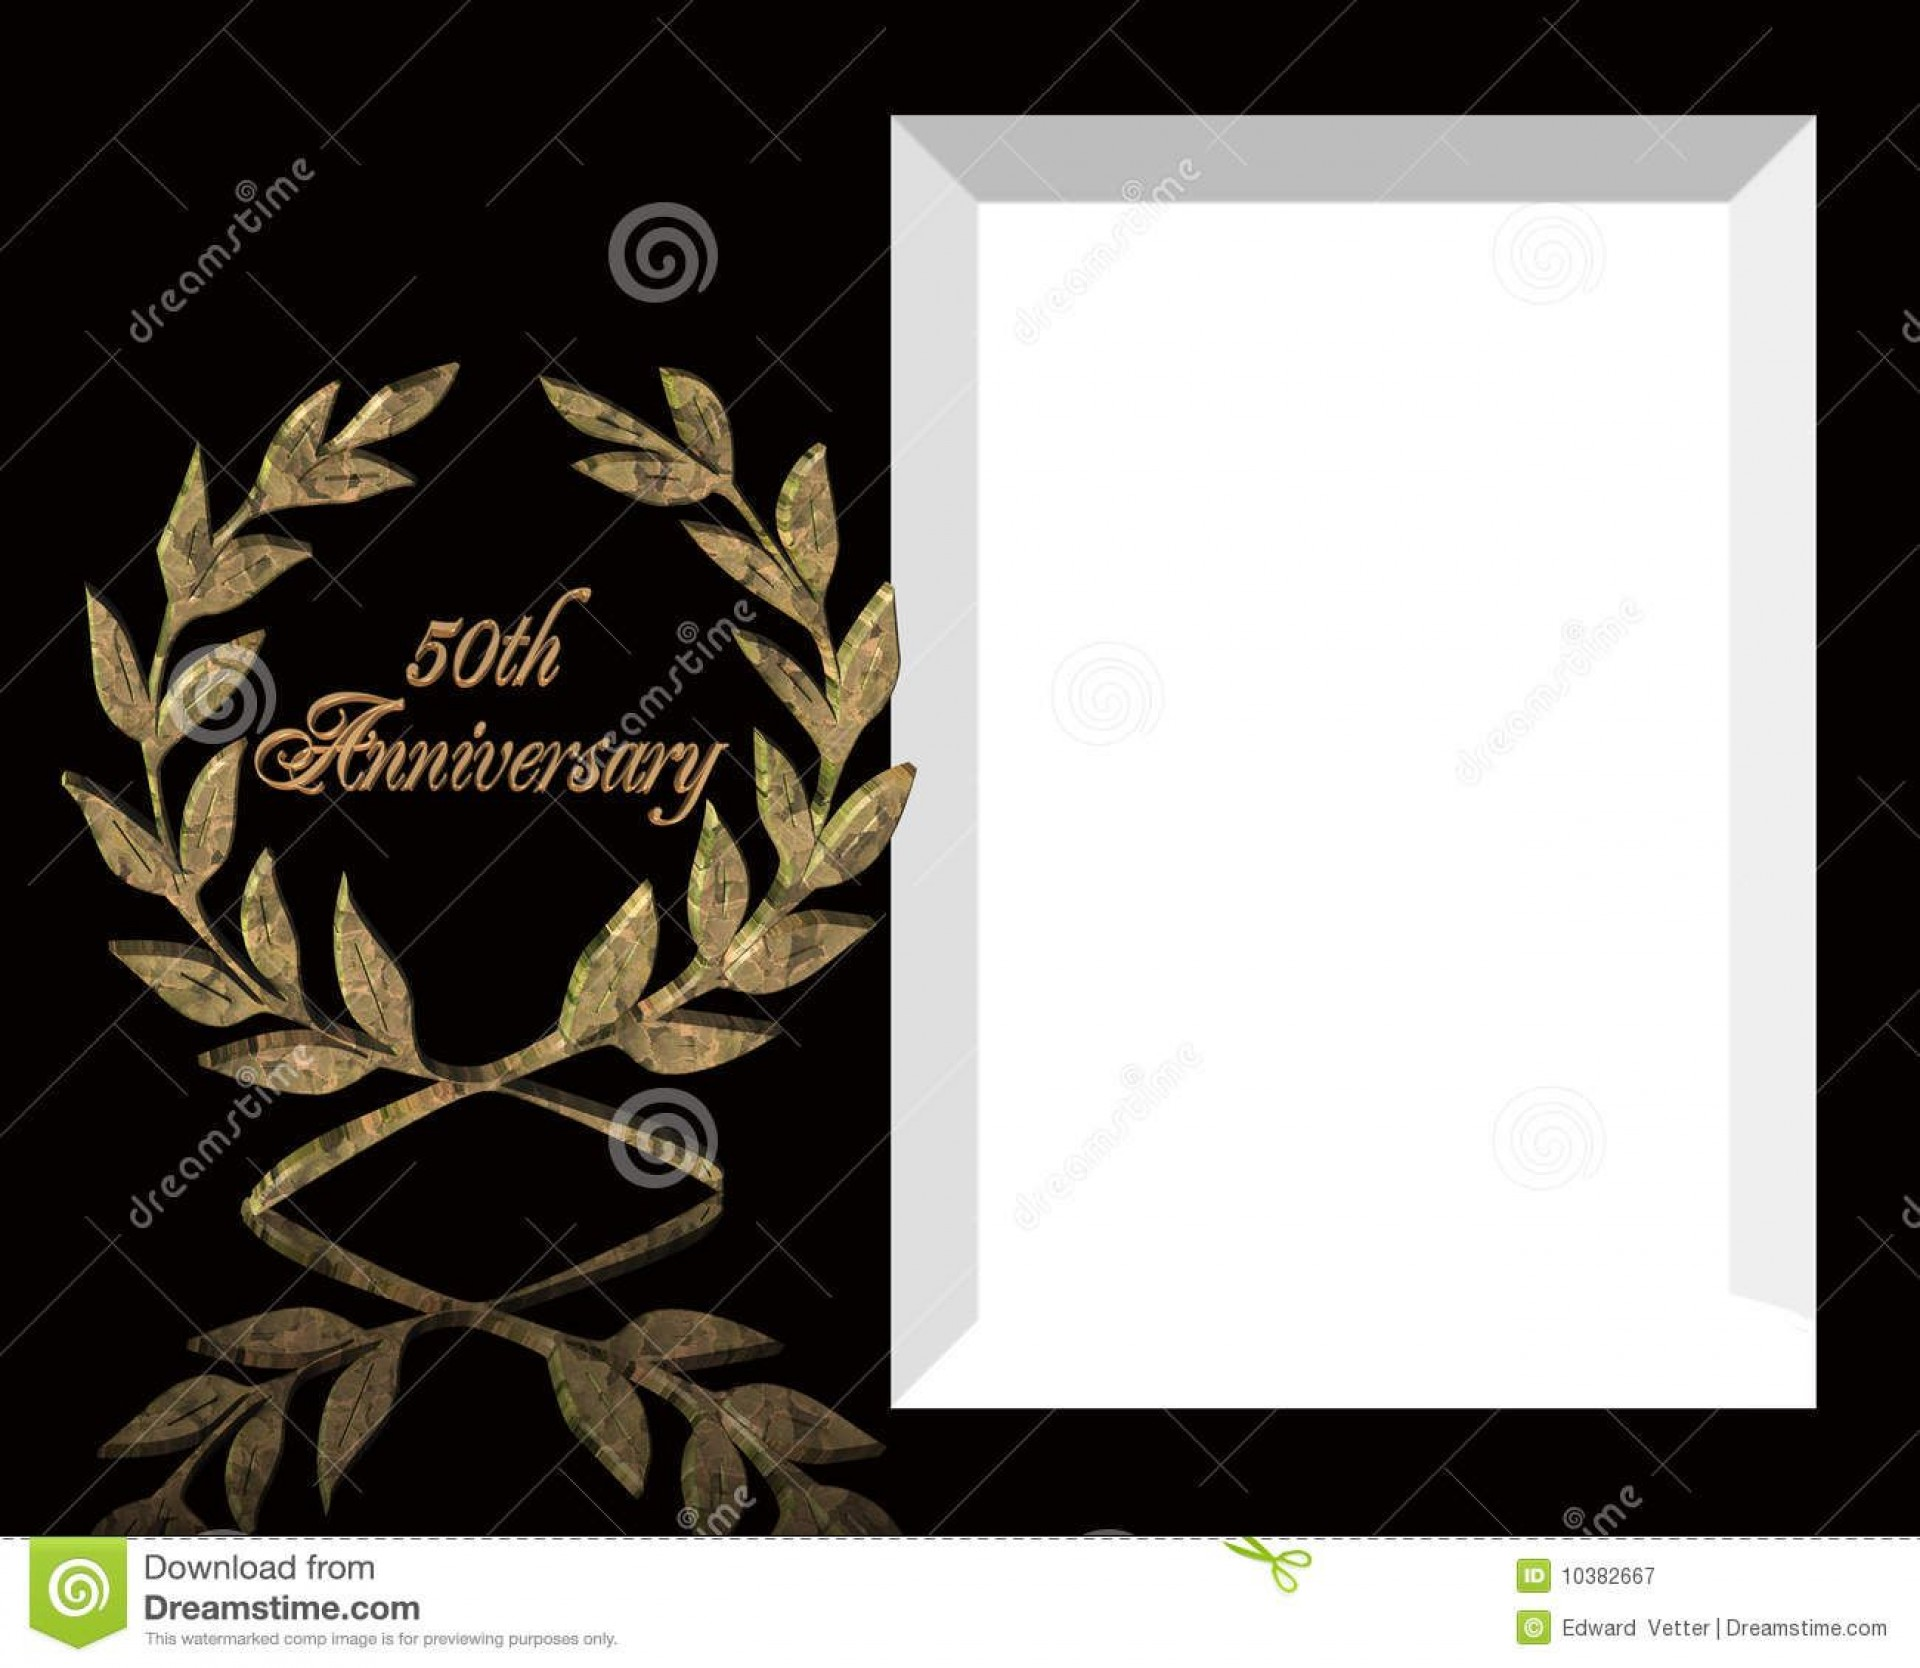 004 Unforgettable 50th Wedding Anniversary Invitation Template Free Example  Download Golden Microsoft Word1920